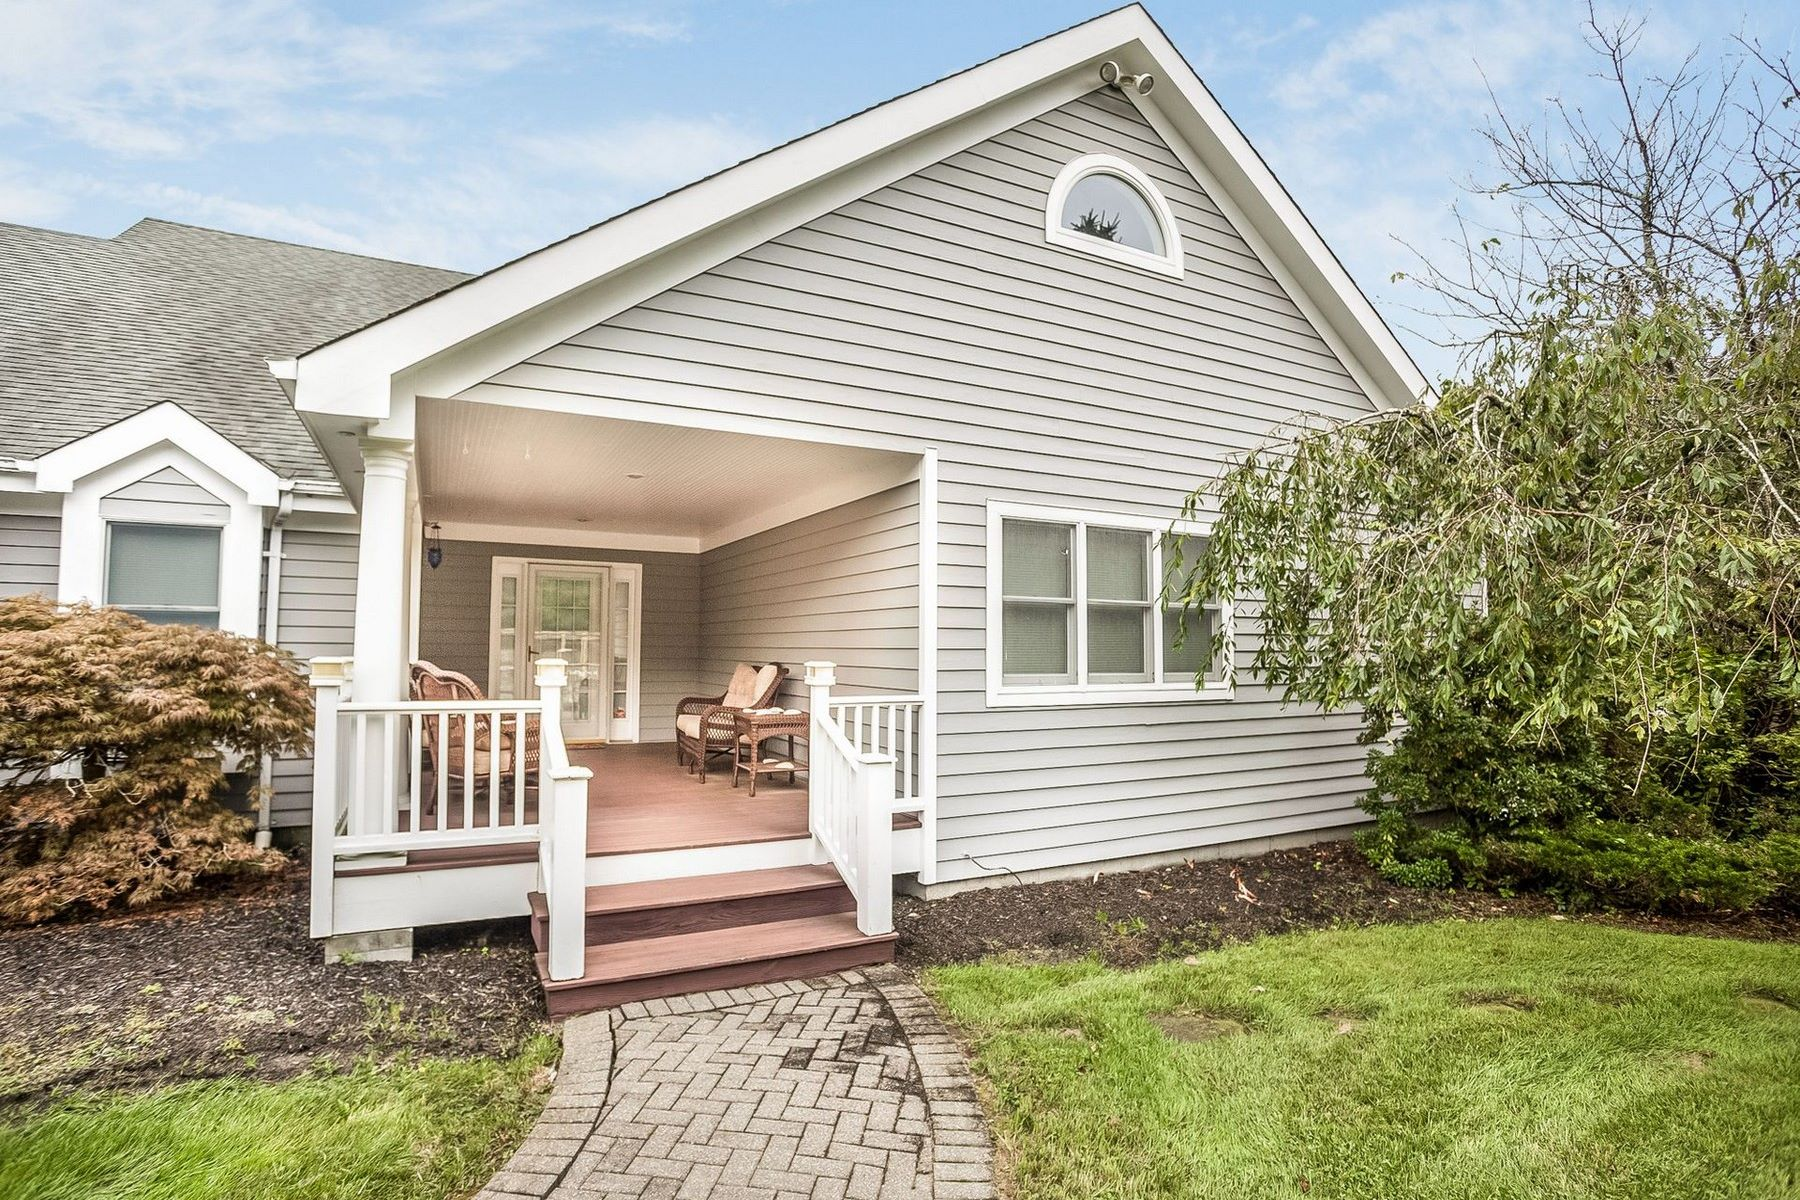 Single Family Homes for Sale at Westhampton 38 S Brushy Neck Ln Westhampton, New York 11977 United States